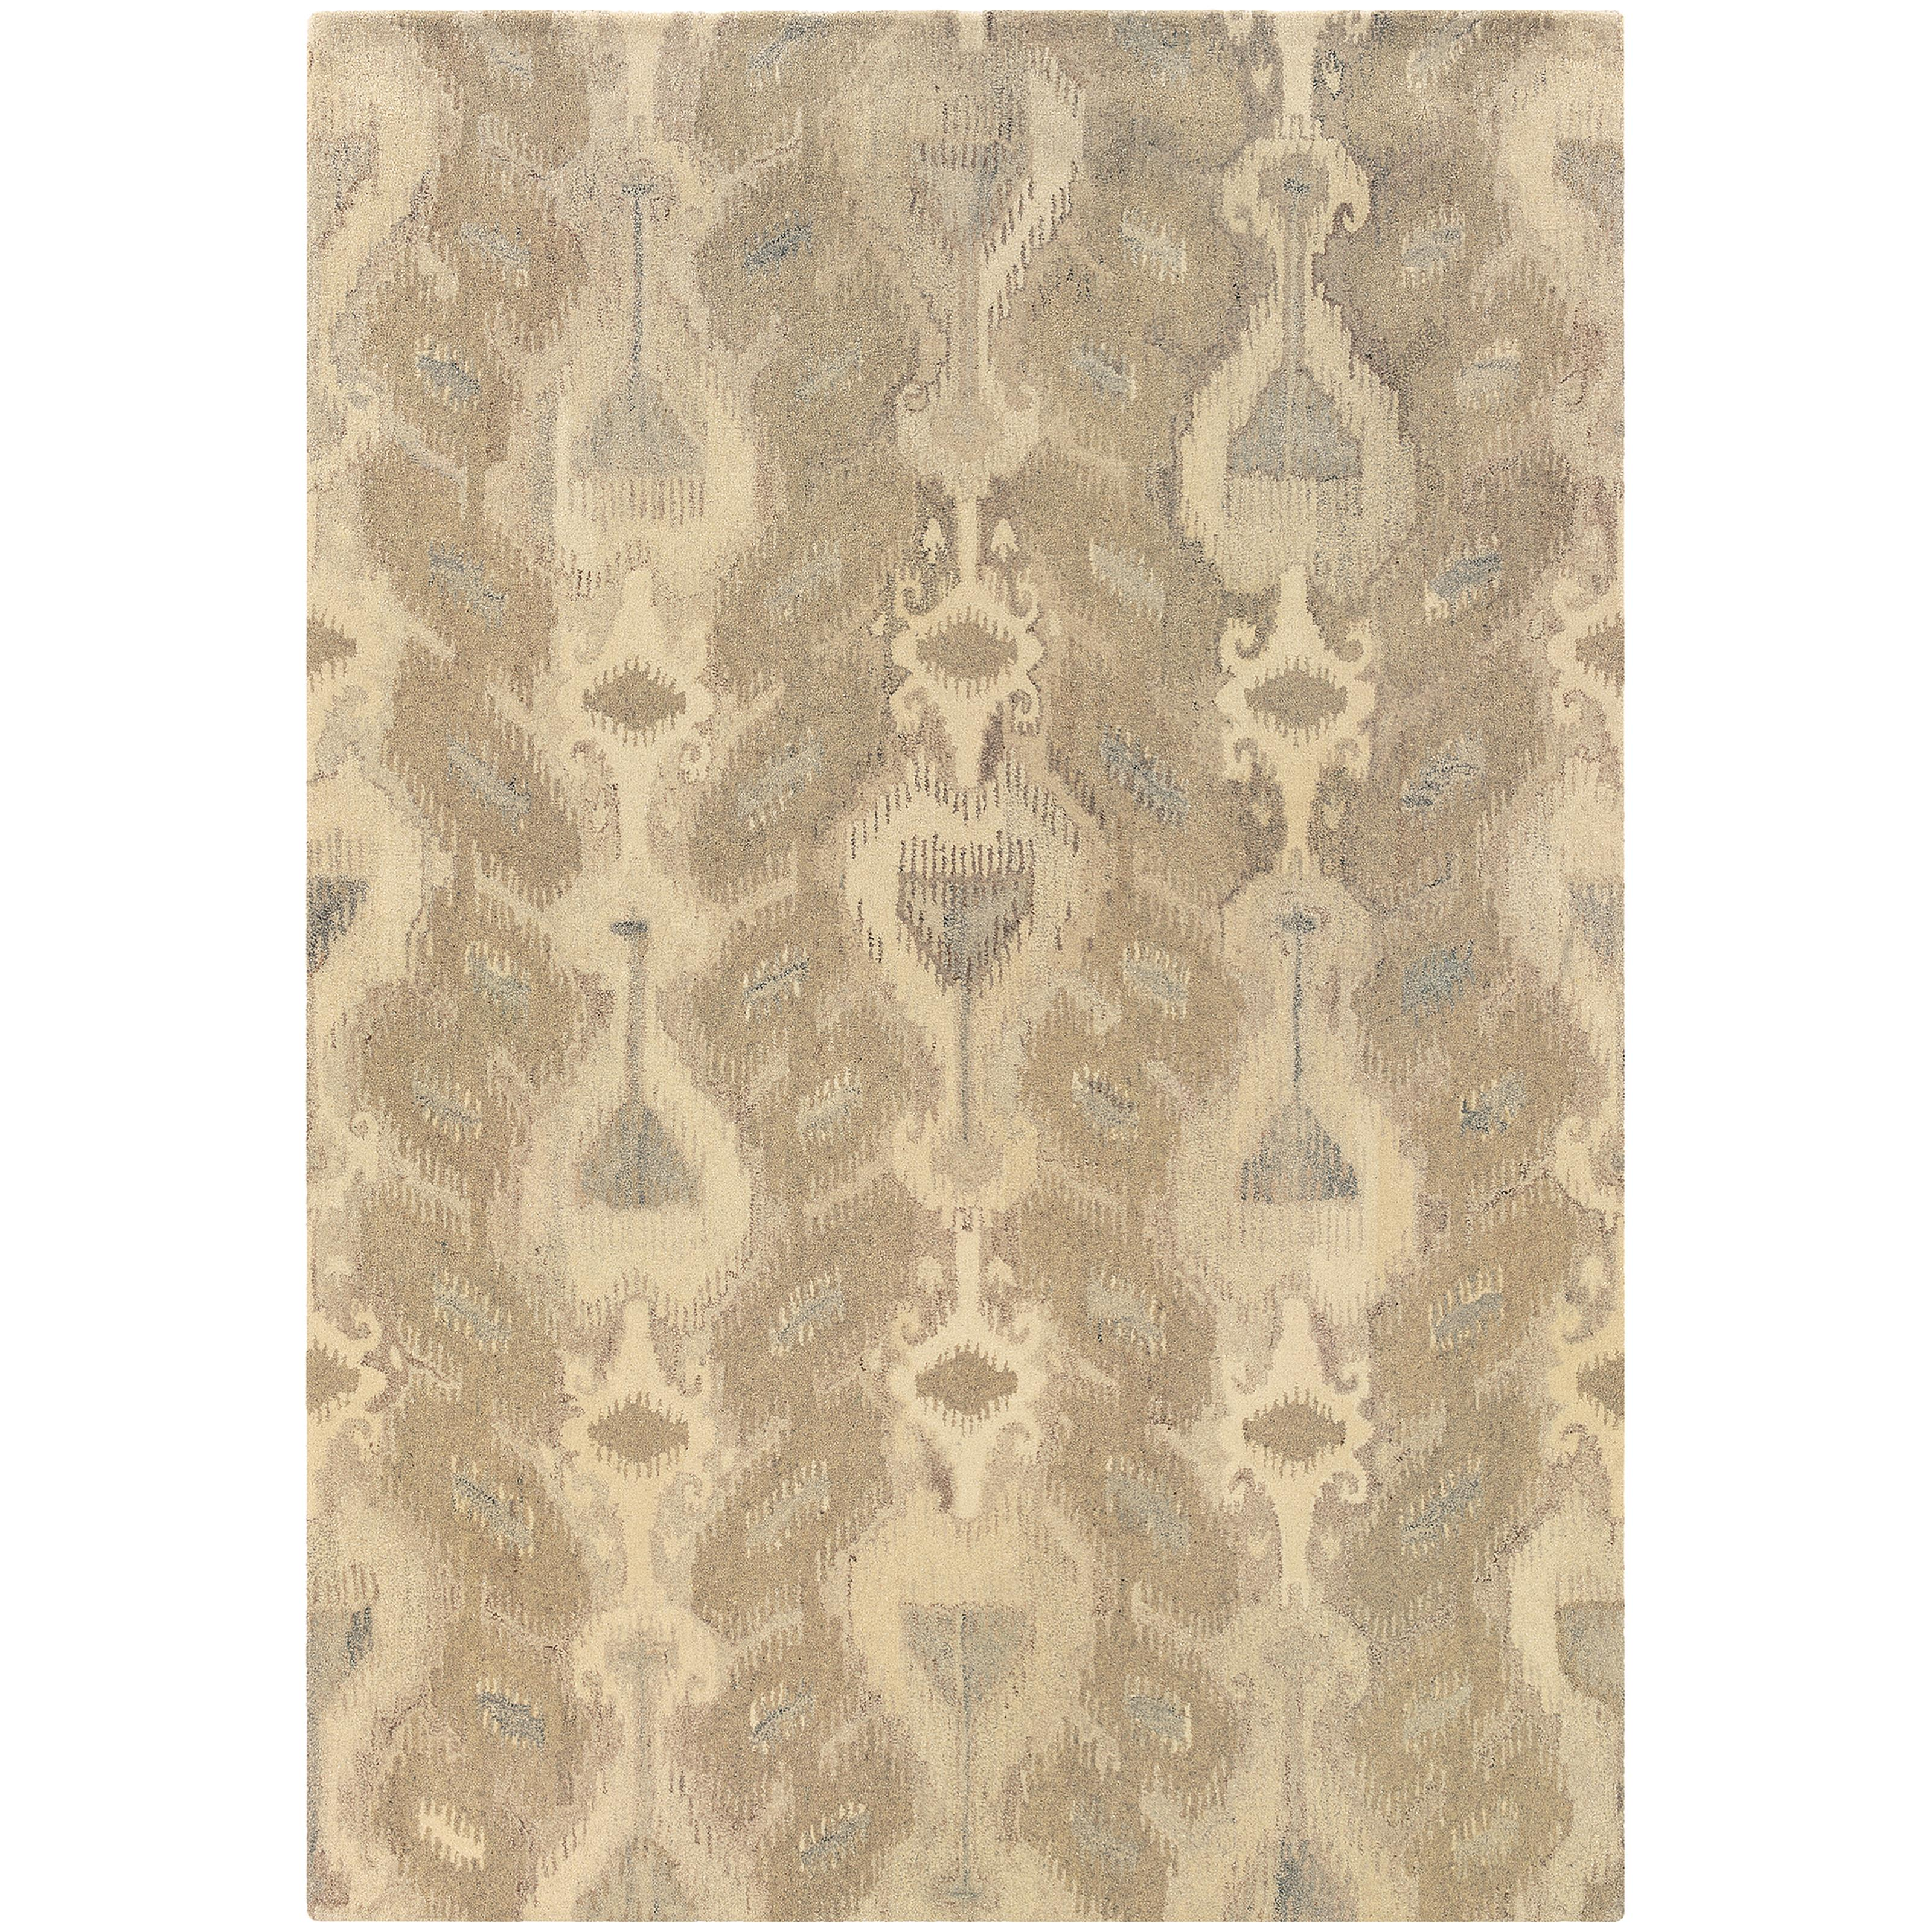 "Anastasia 8' 0"" X 10' 0"" Rug by Oriental Weavers at Steger's Furniture"